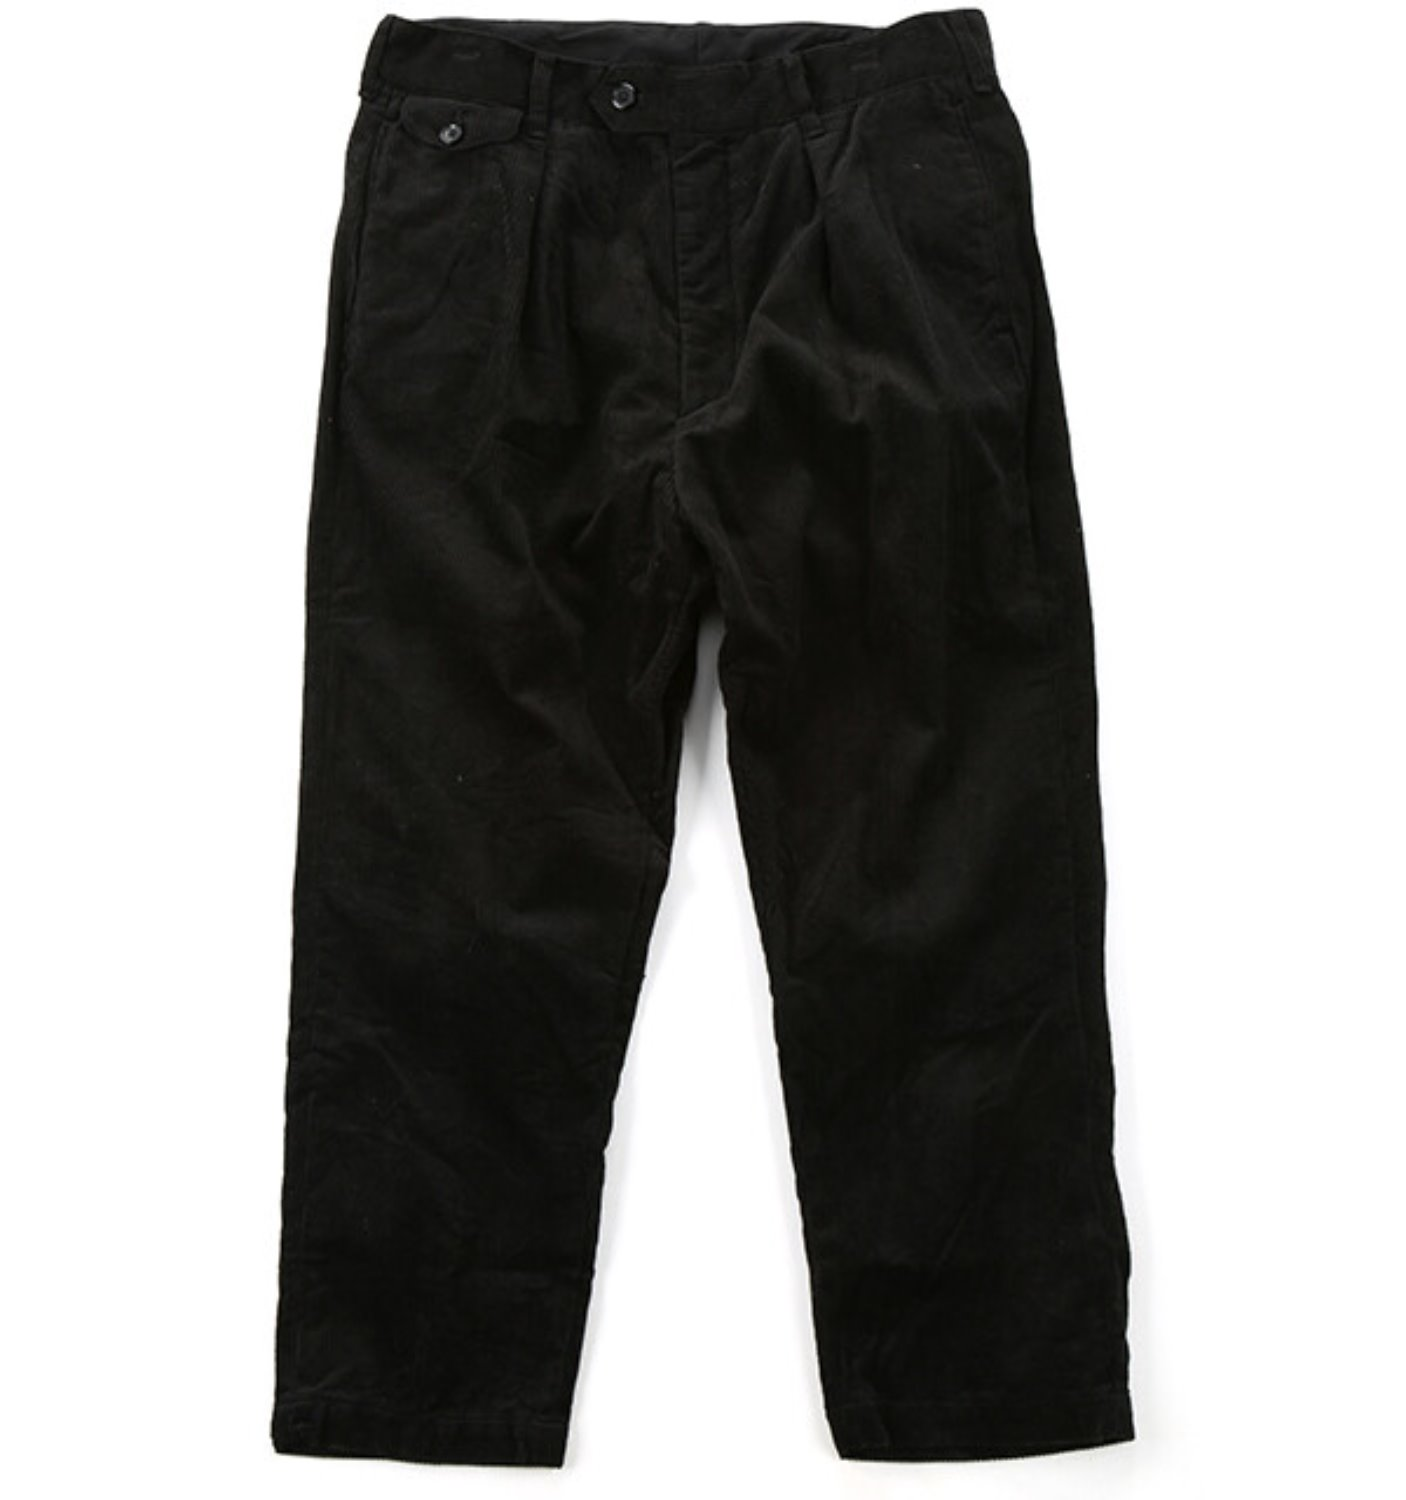 RLJ PANT BLACK COTTON 8W CORDUROY